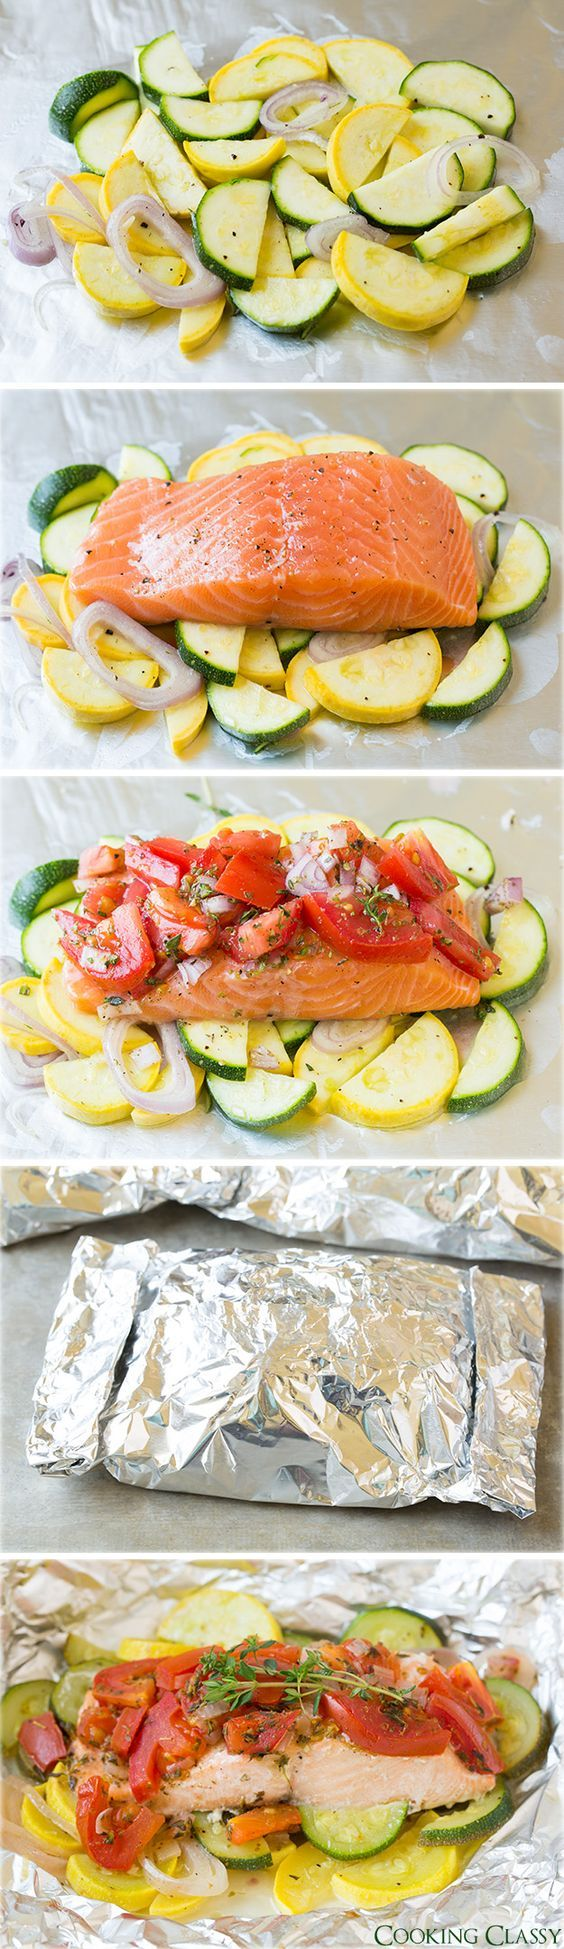 Salmon and Summer Veggies in Foil - so easy to make, perfectly flavorful and clean up is a breeze! Whole family LOVED this salmon!: